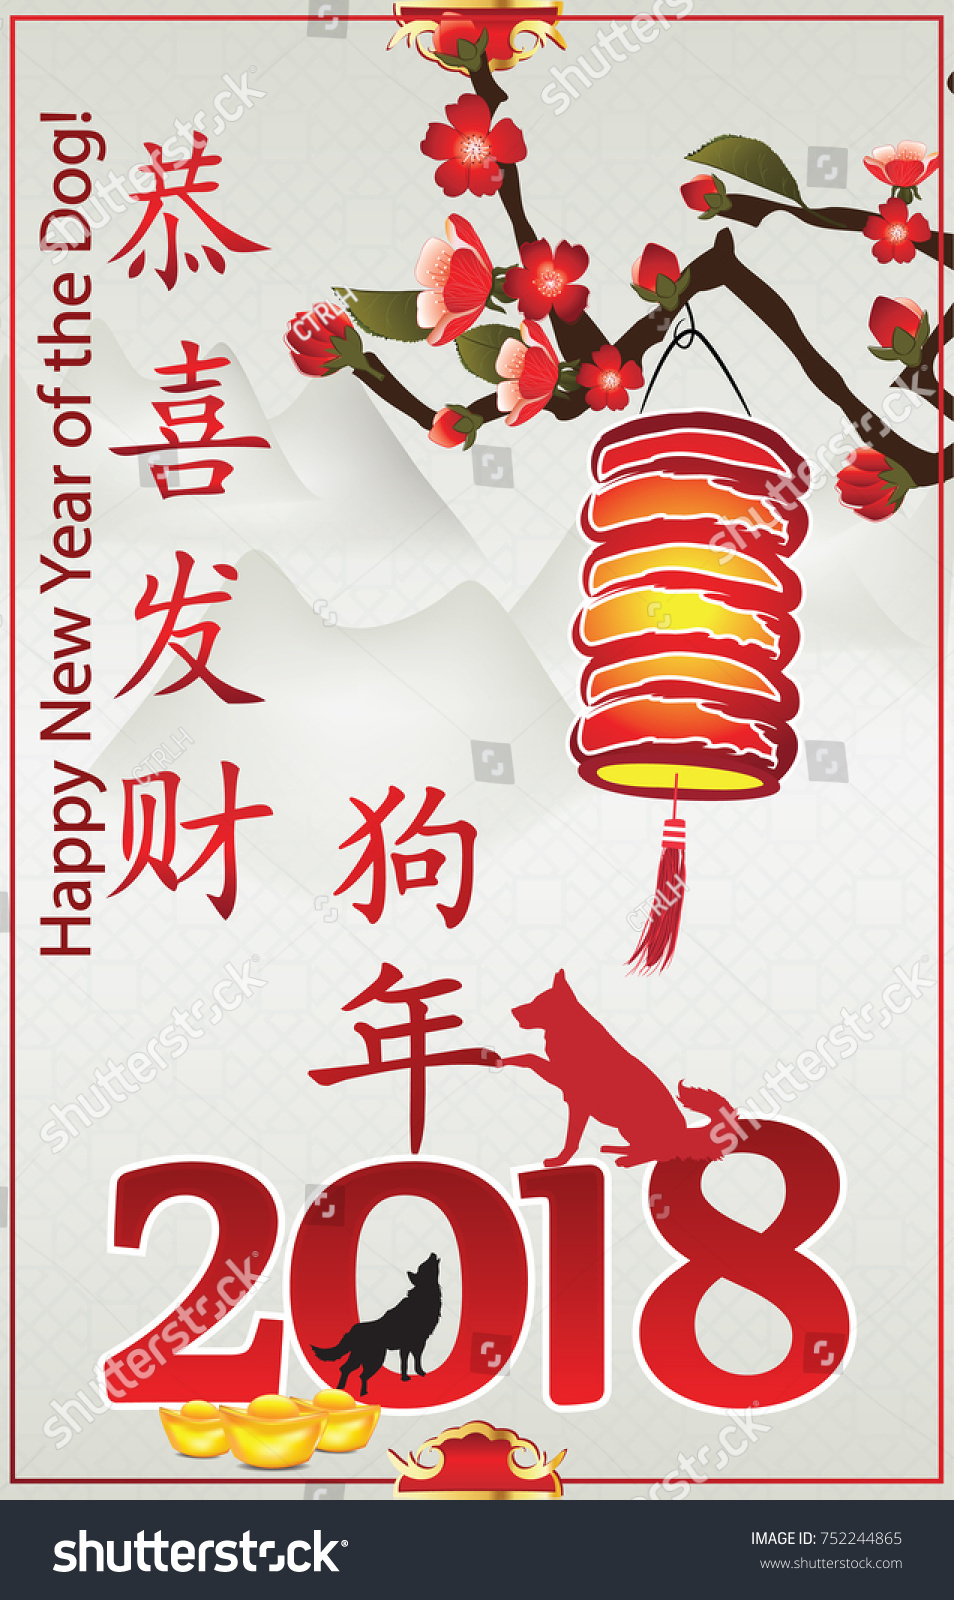 happy chinese new year greeting card with text in chinese and english ideograms translation